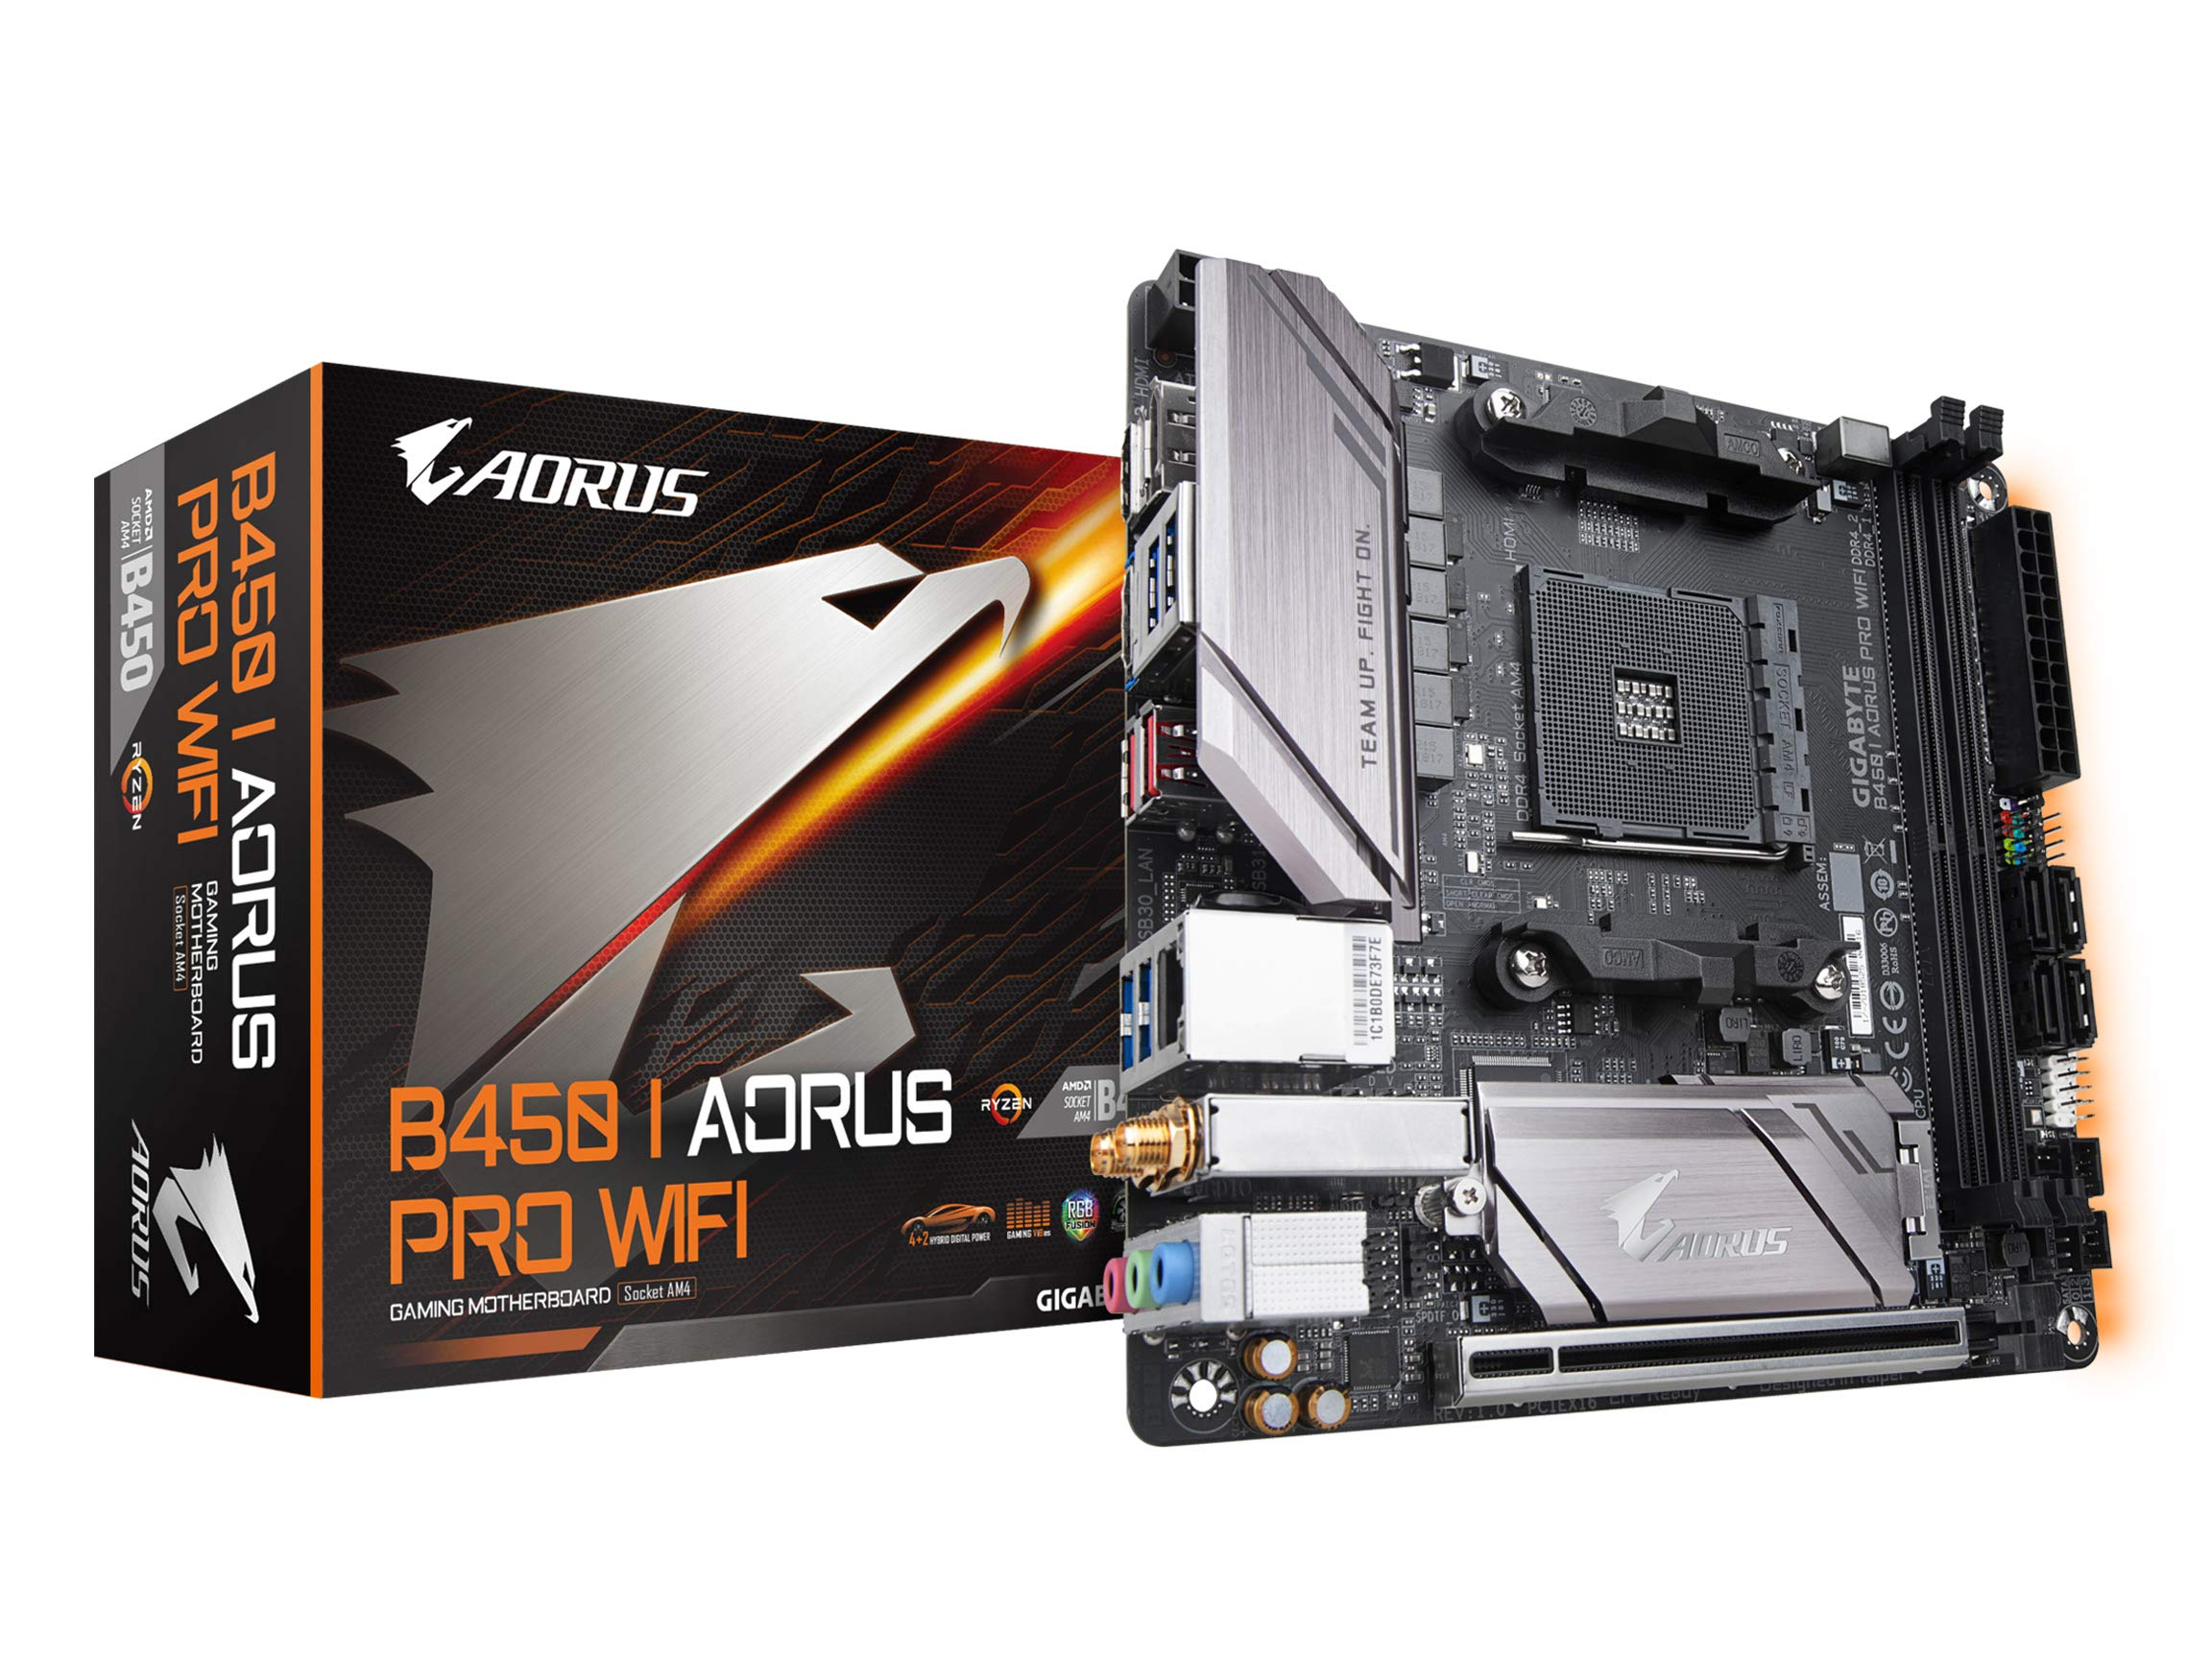 GIGABYTE B450 I AORUS PRO WiFi (AMD Ryzen AM4/M.2 Thermal...